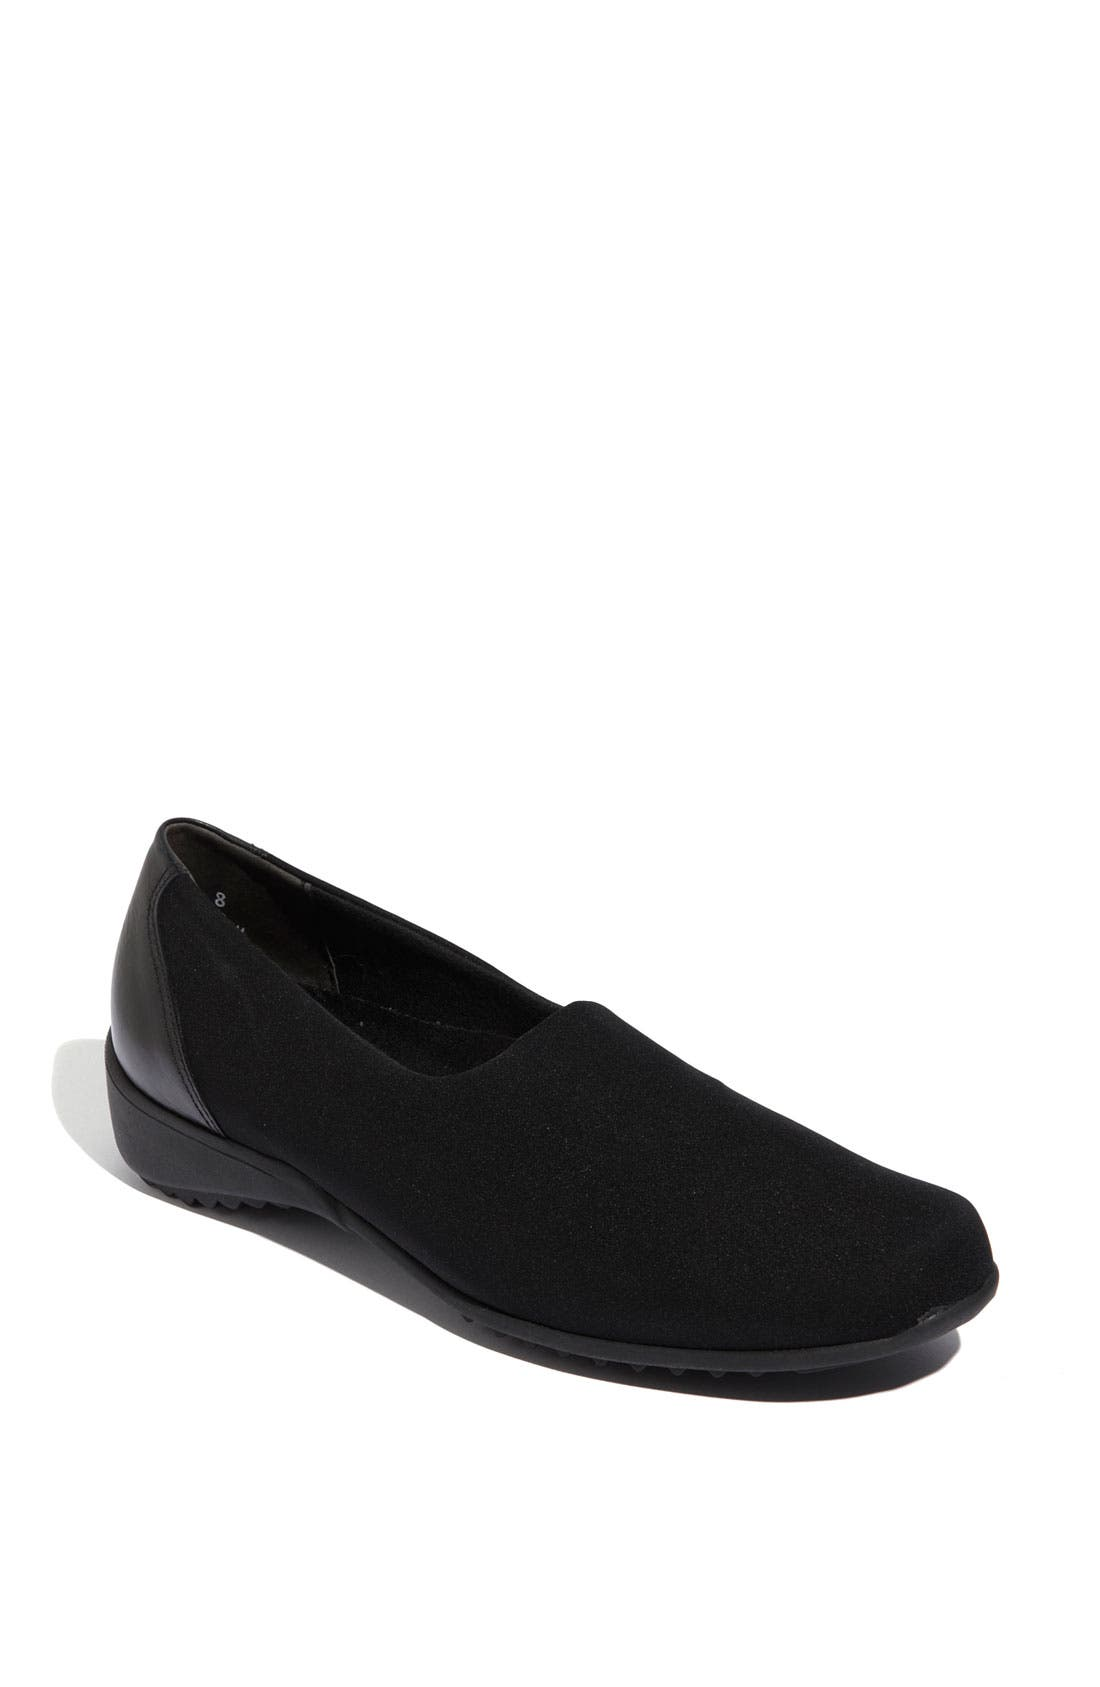 Alternate Image 1 Selected - Munro 'Traveler' Slip-On (Women)